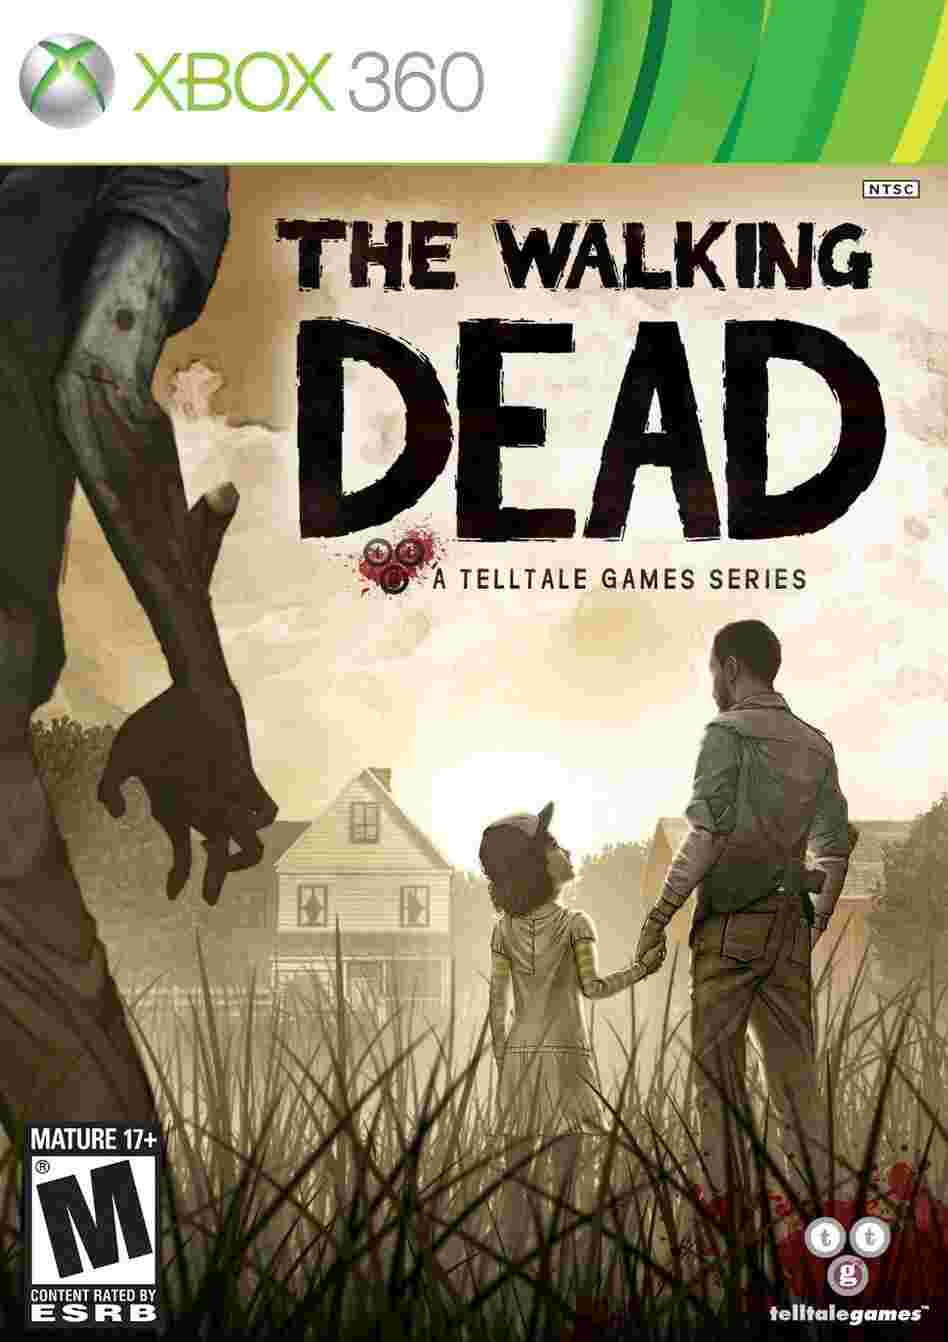 The cover of THE WALKING DEAD.